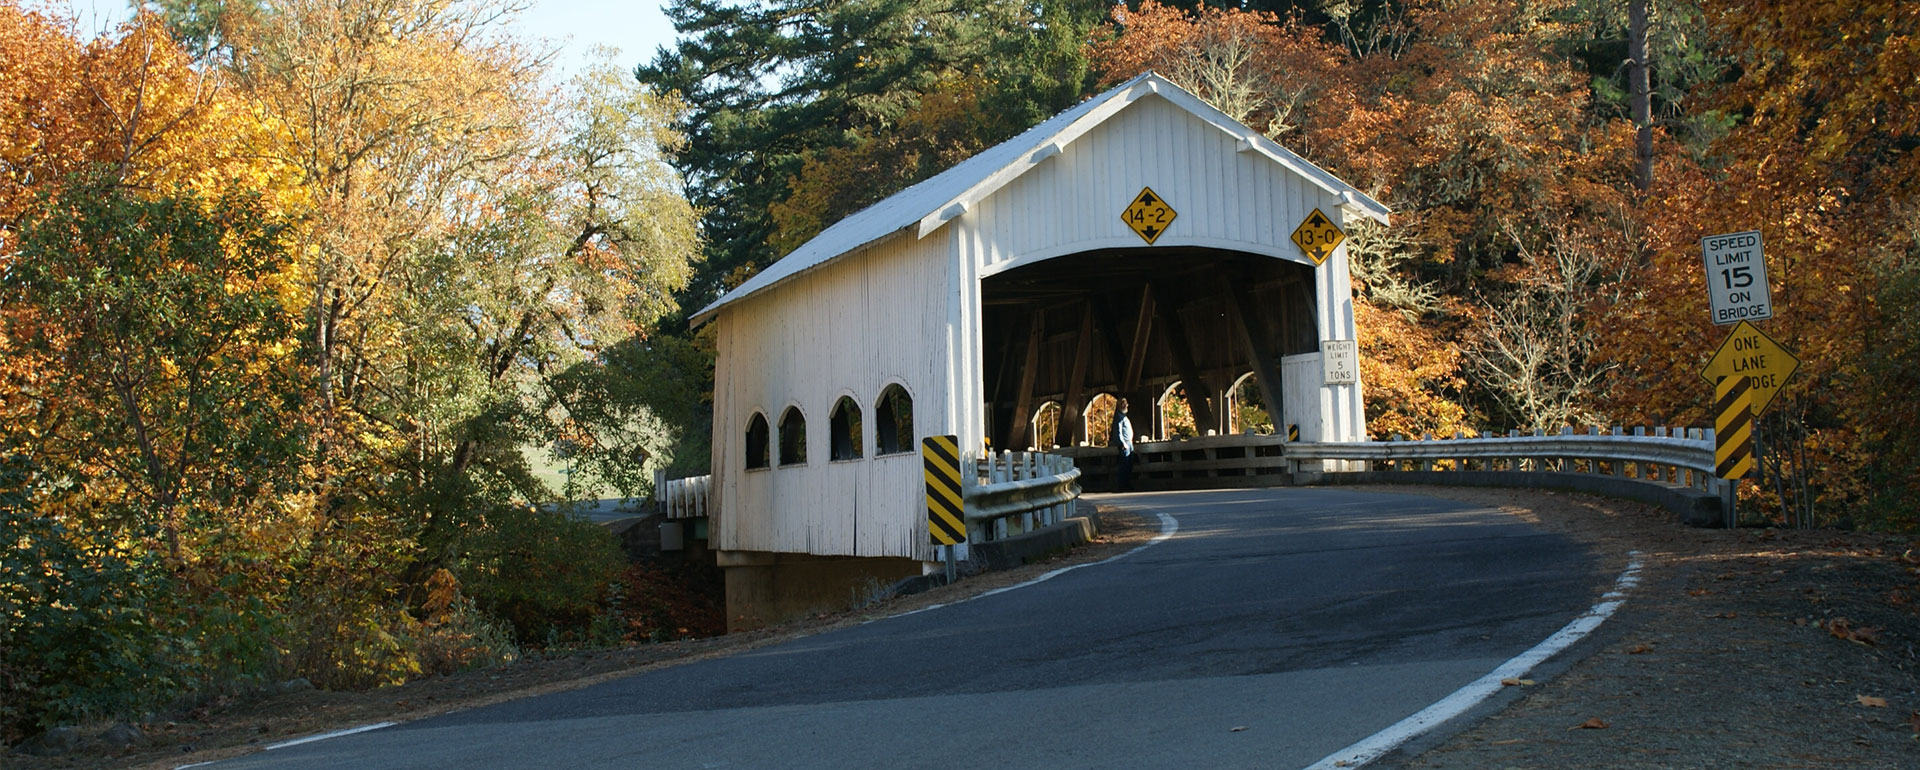 Image of a covered bridge